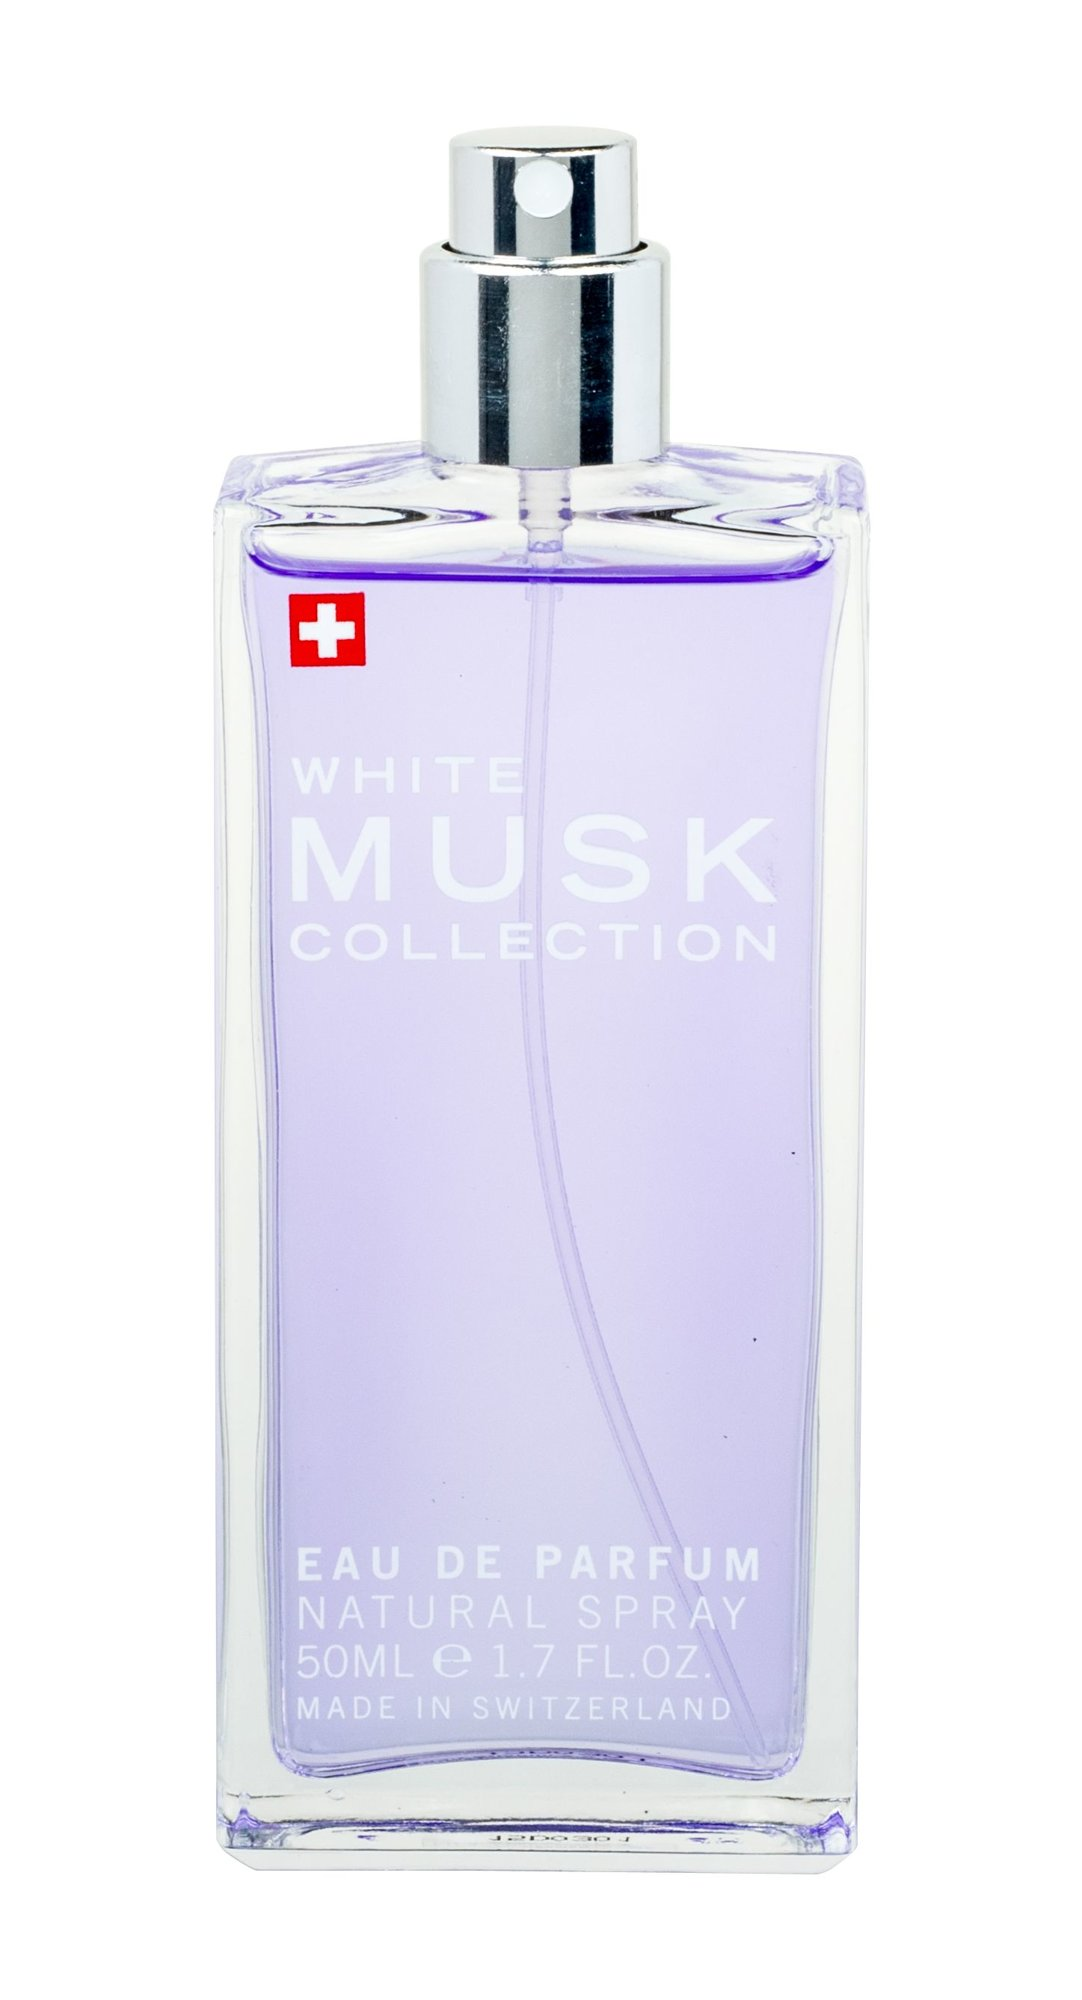 MUSK White Collection